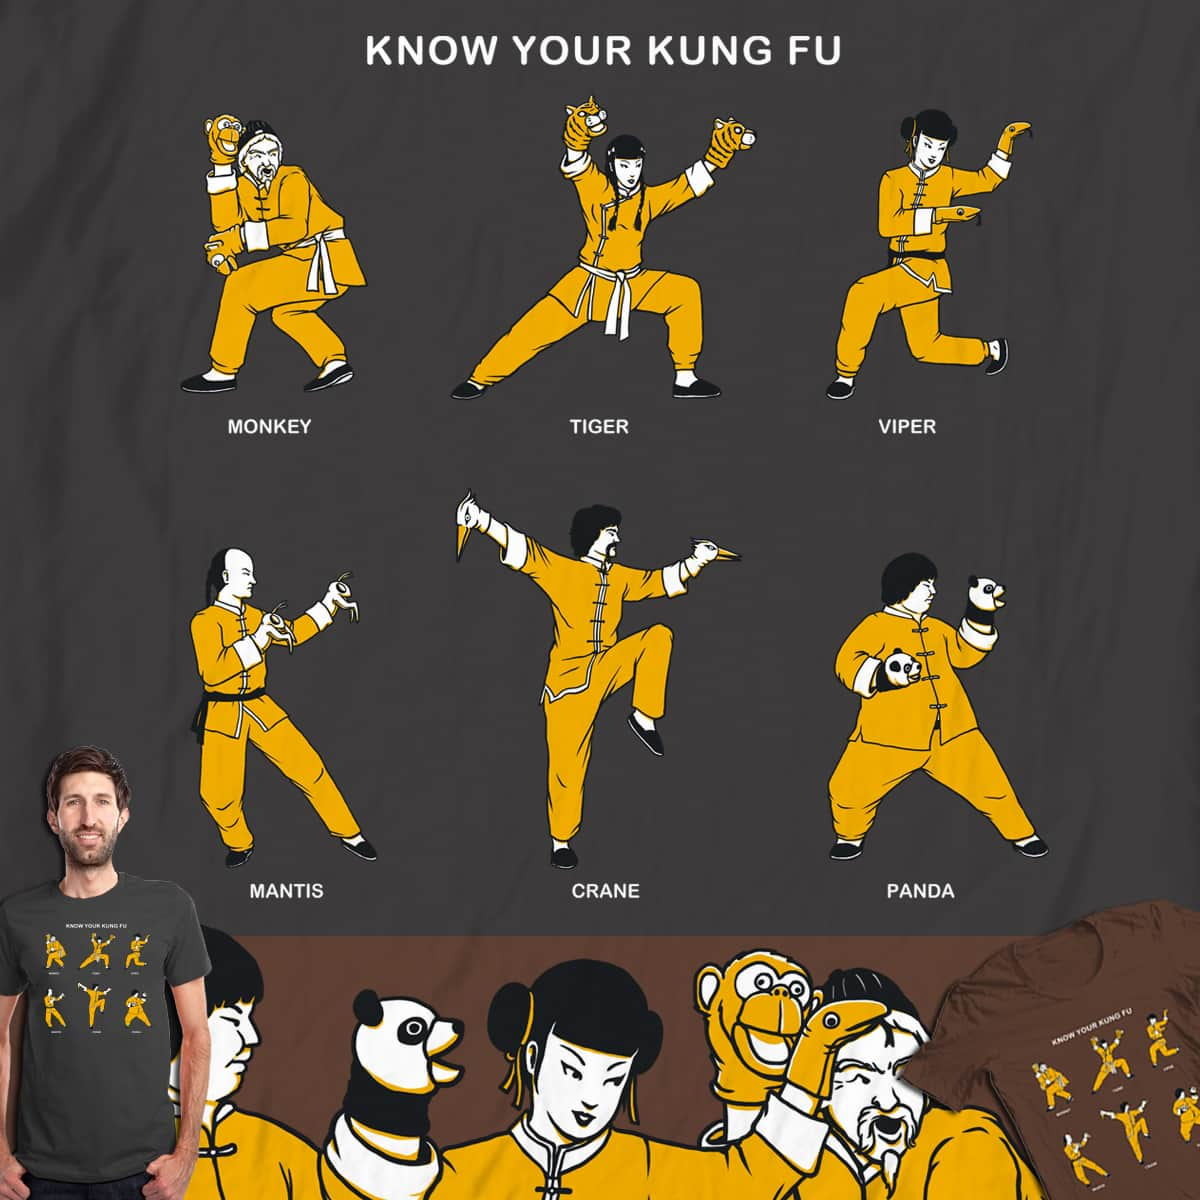 Know Your Kung Fu by Doodle by Ninja! on Threadless